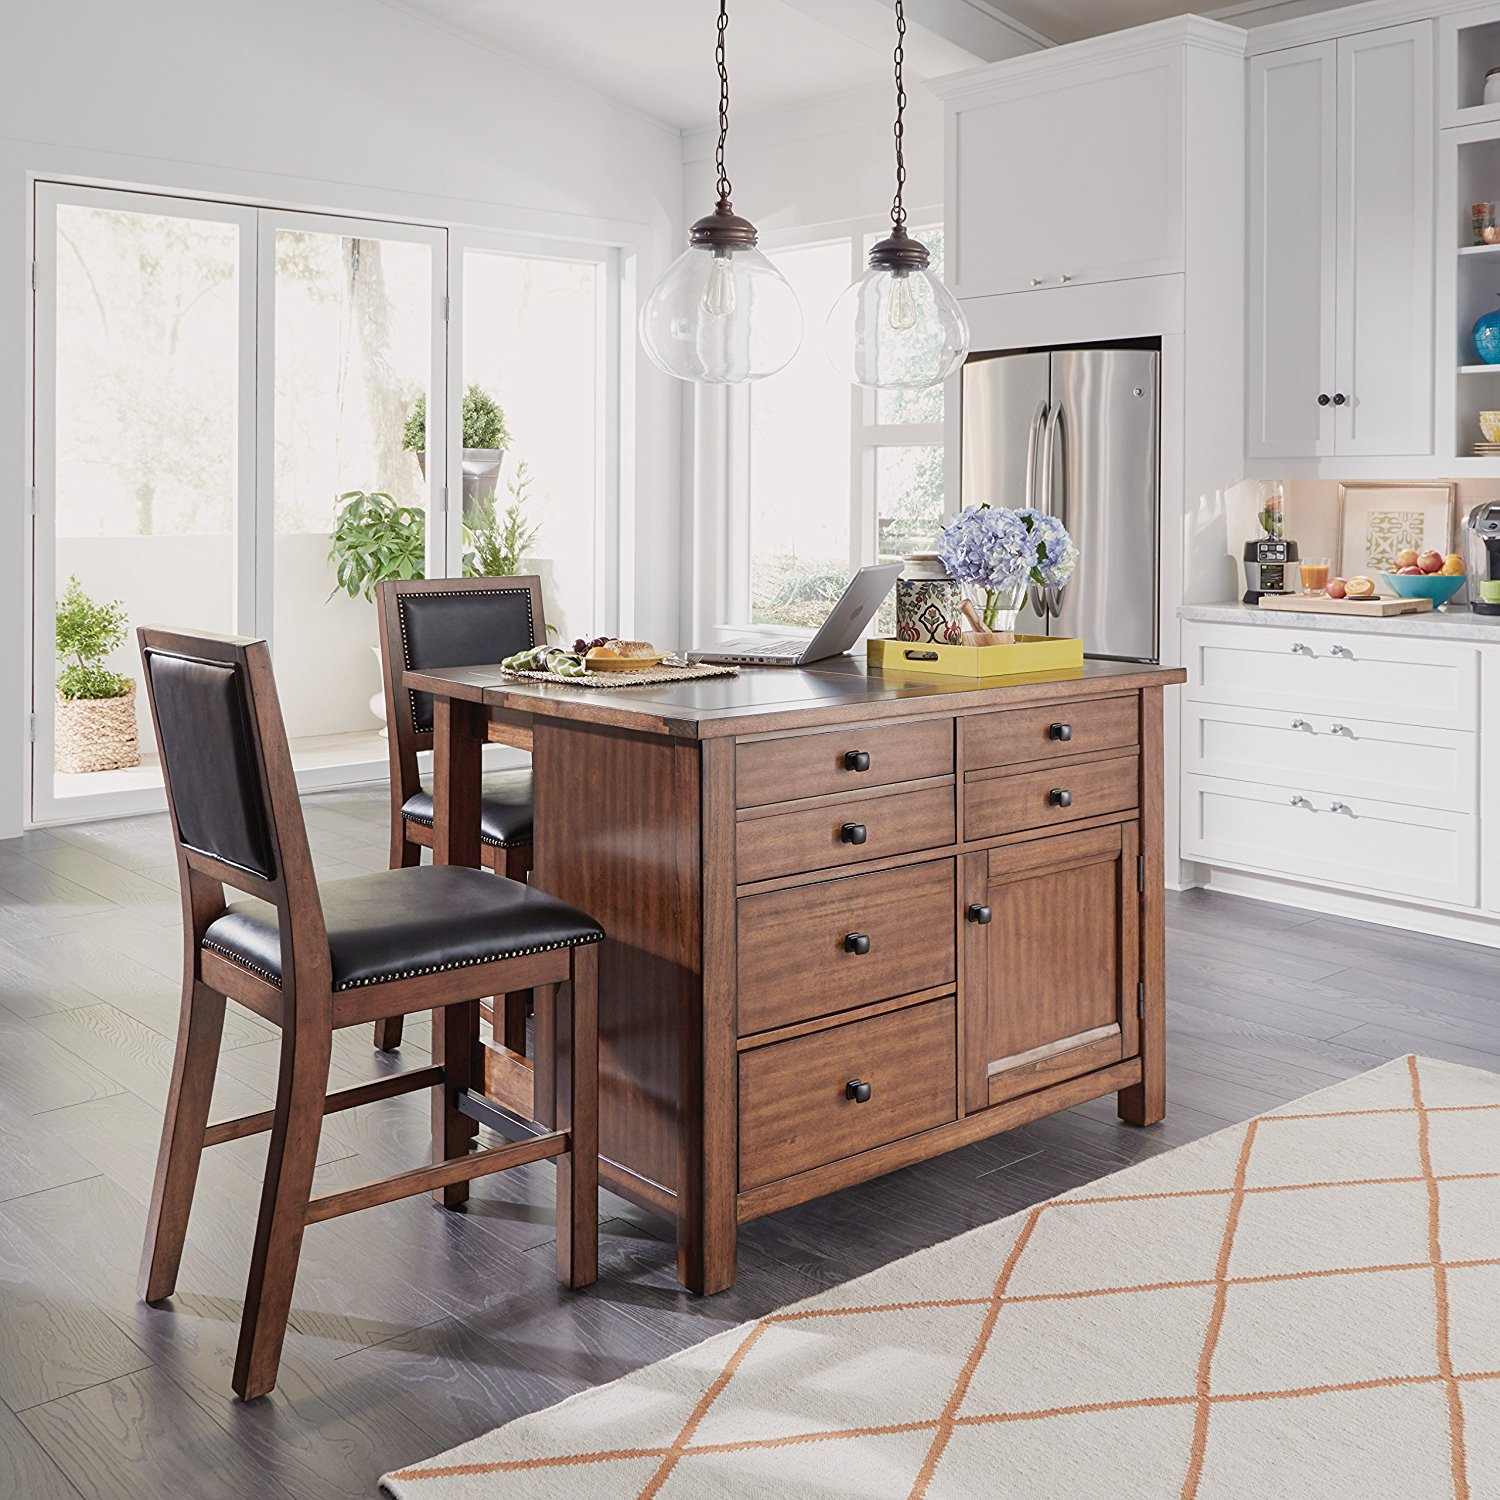 Kitchen Bench Finishes: 2018 Top 10 Best Kitchen Islands, Carts, Centers & Utility